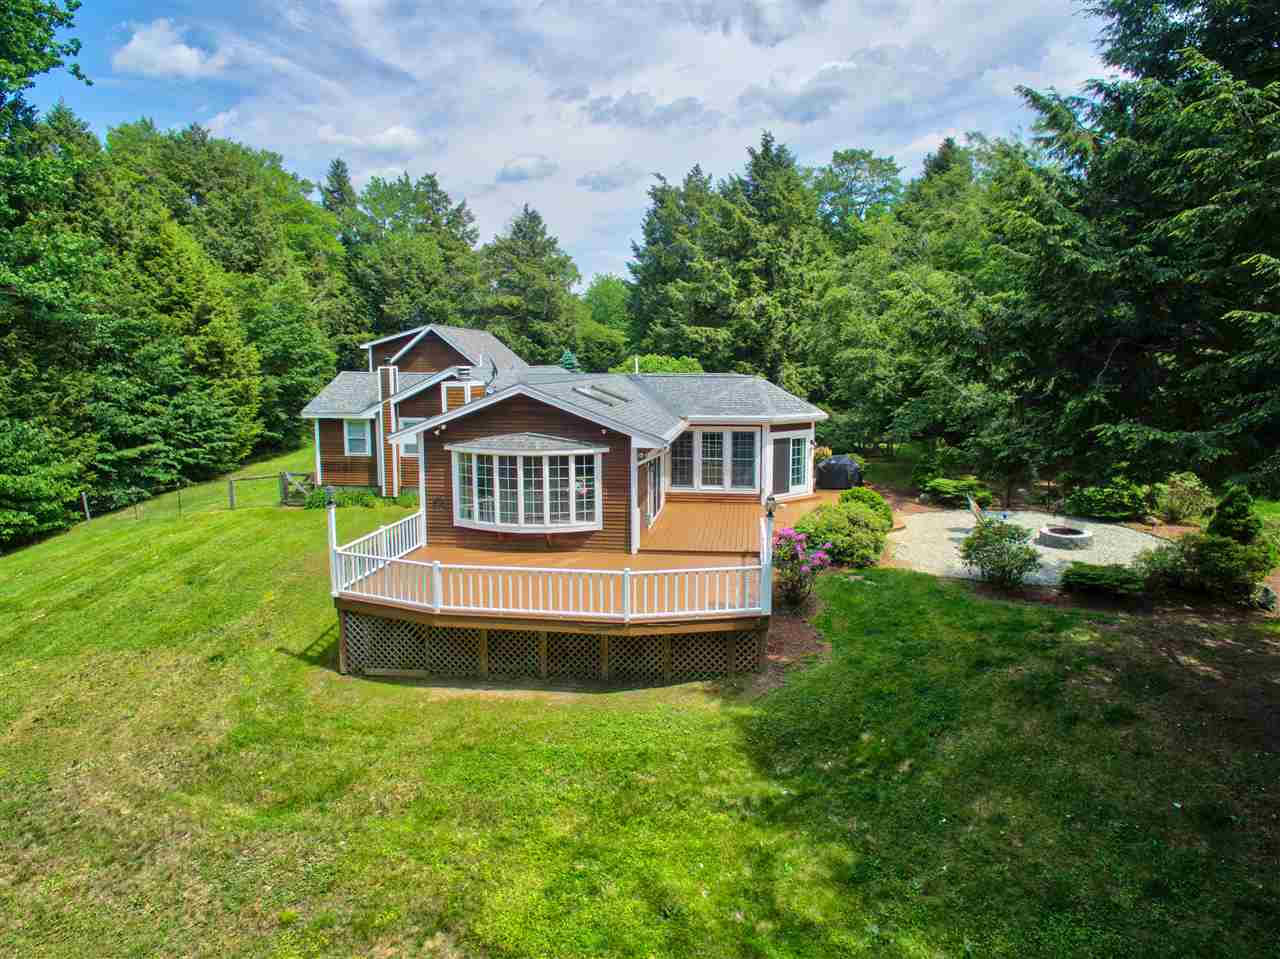 Photo of 220 Forest Lane Stowe VT 05672